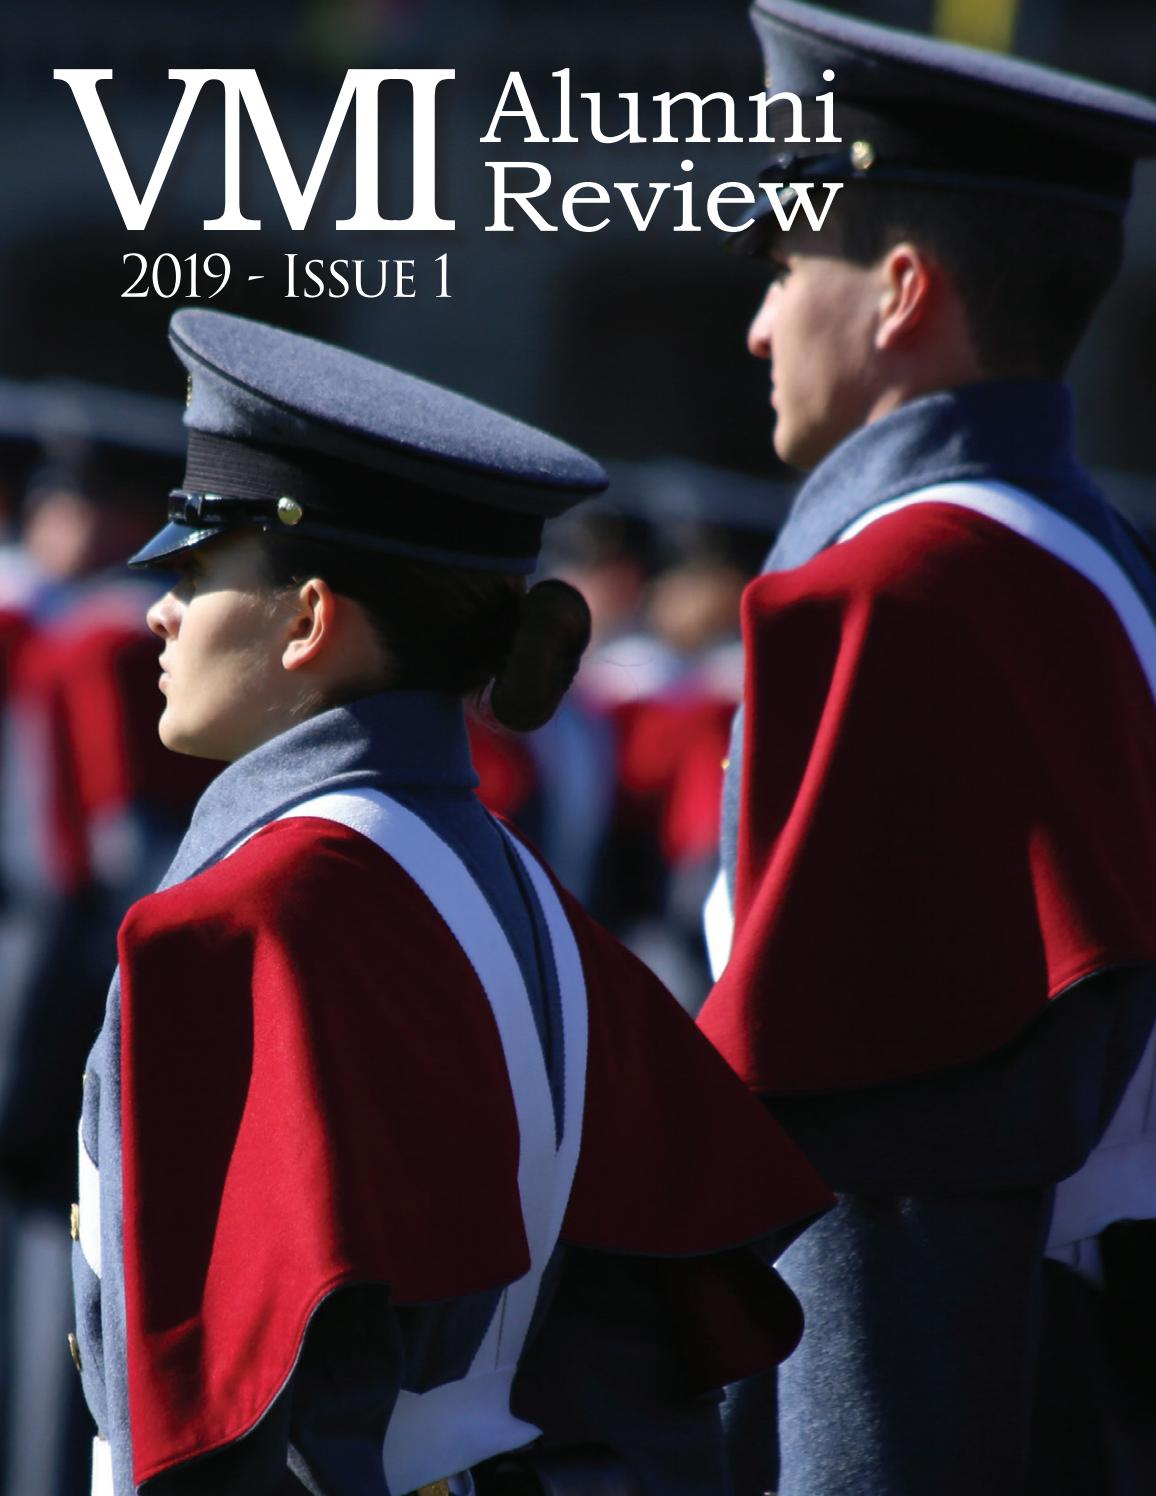 be72c9085fb5 2019-Issue 1 Alumni Review by VMI Alumni Agencies - issuu